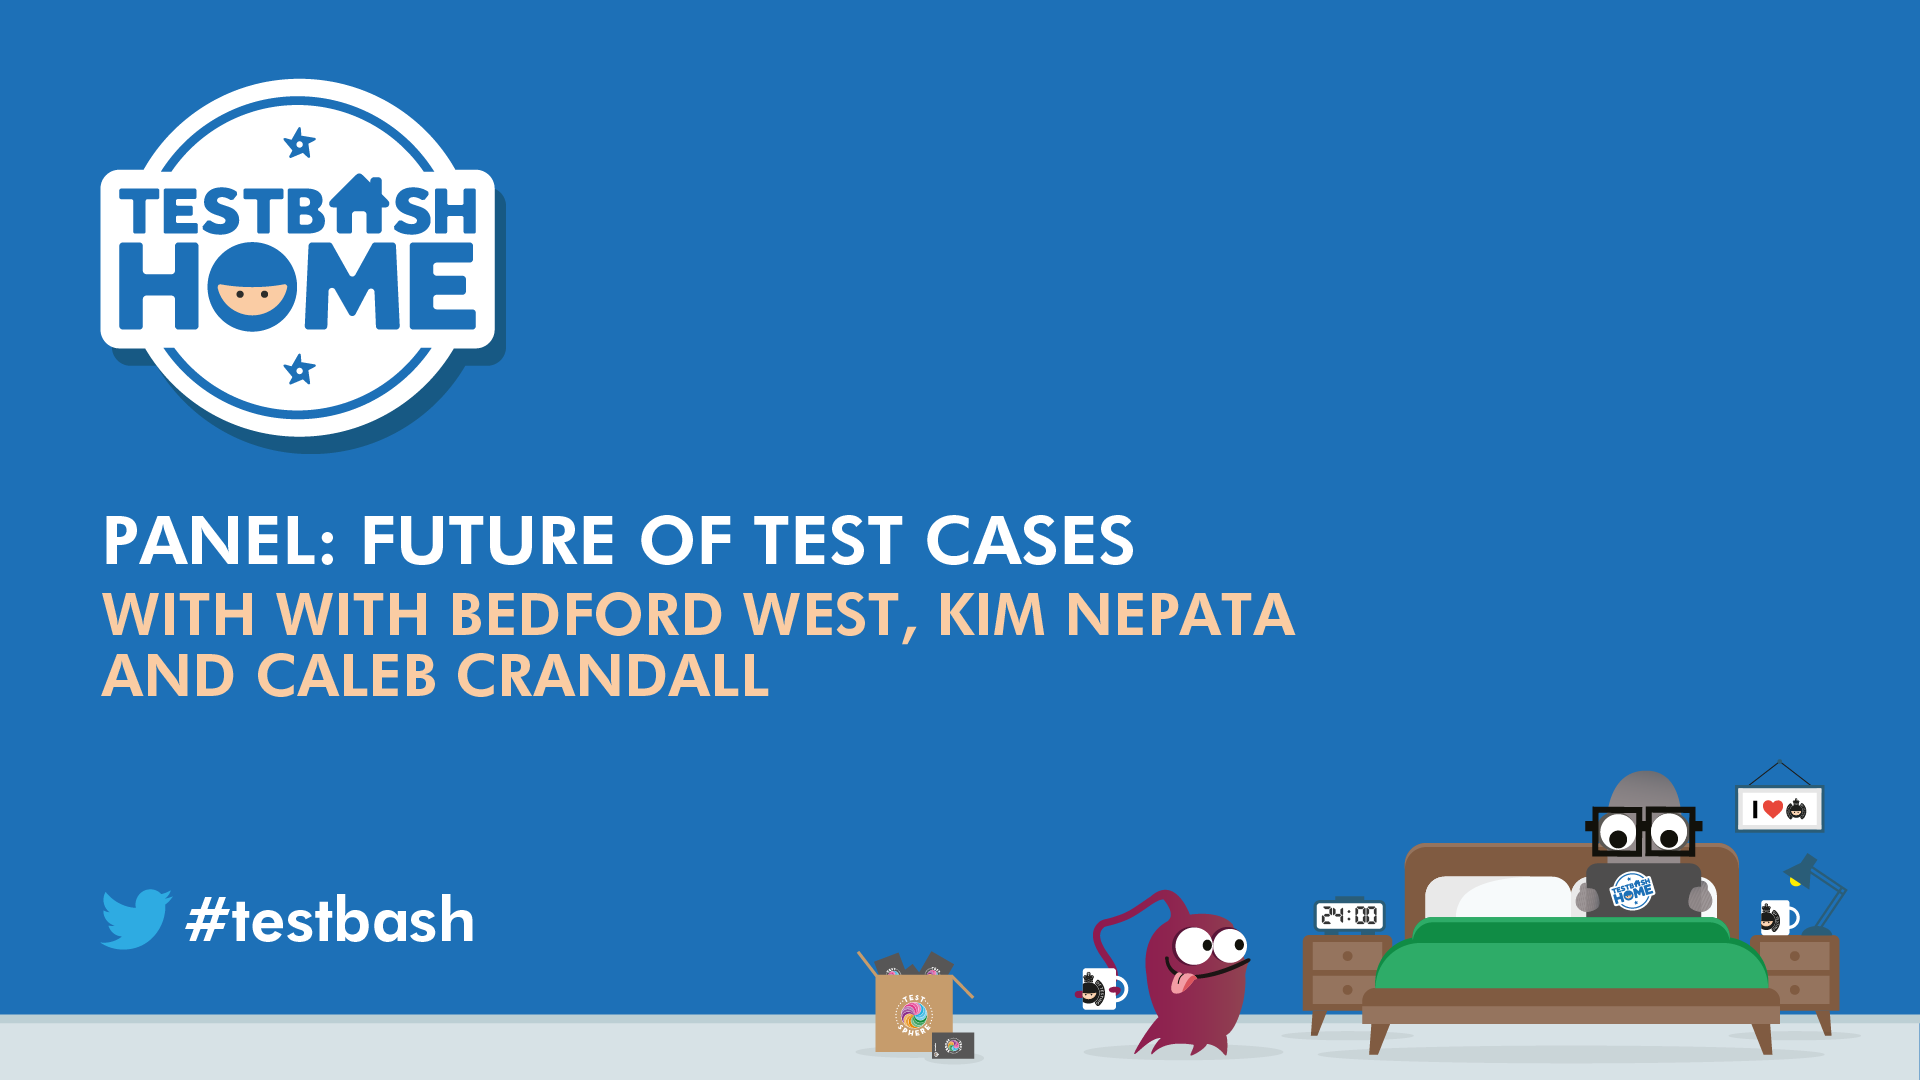 Discussion - The Future of Test Cases